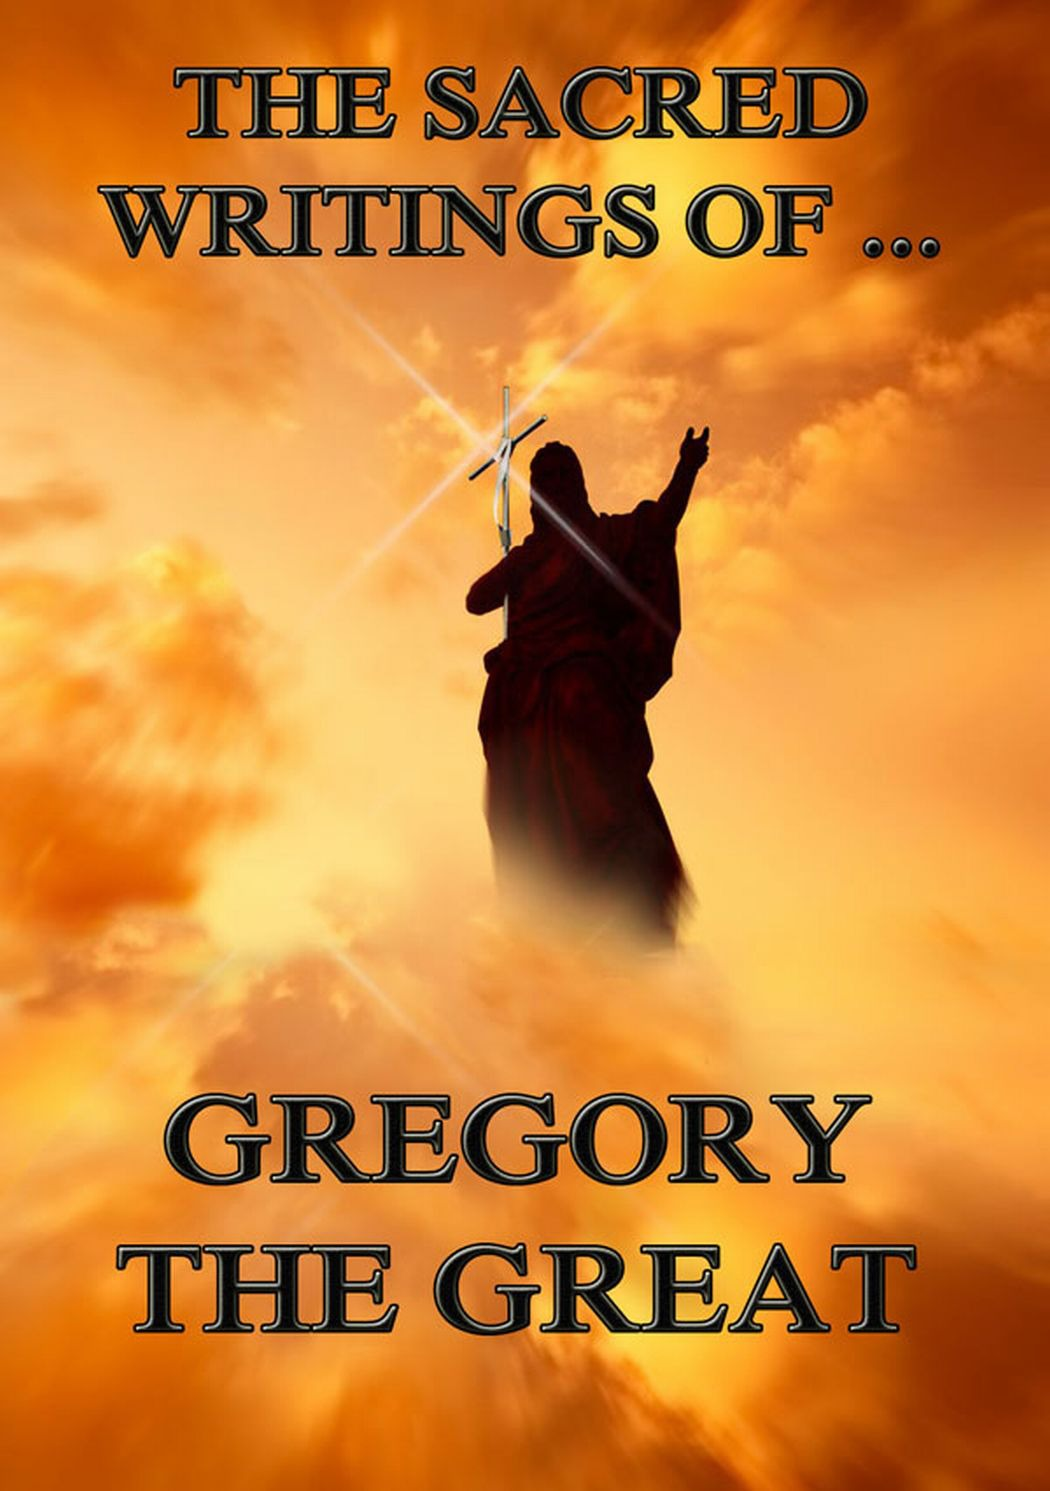 Gregory the Great The Sacred Writings of Gregory the Great the incredible transformation of gregory todd